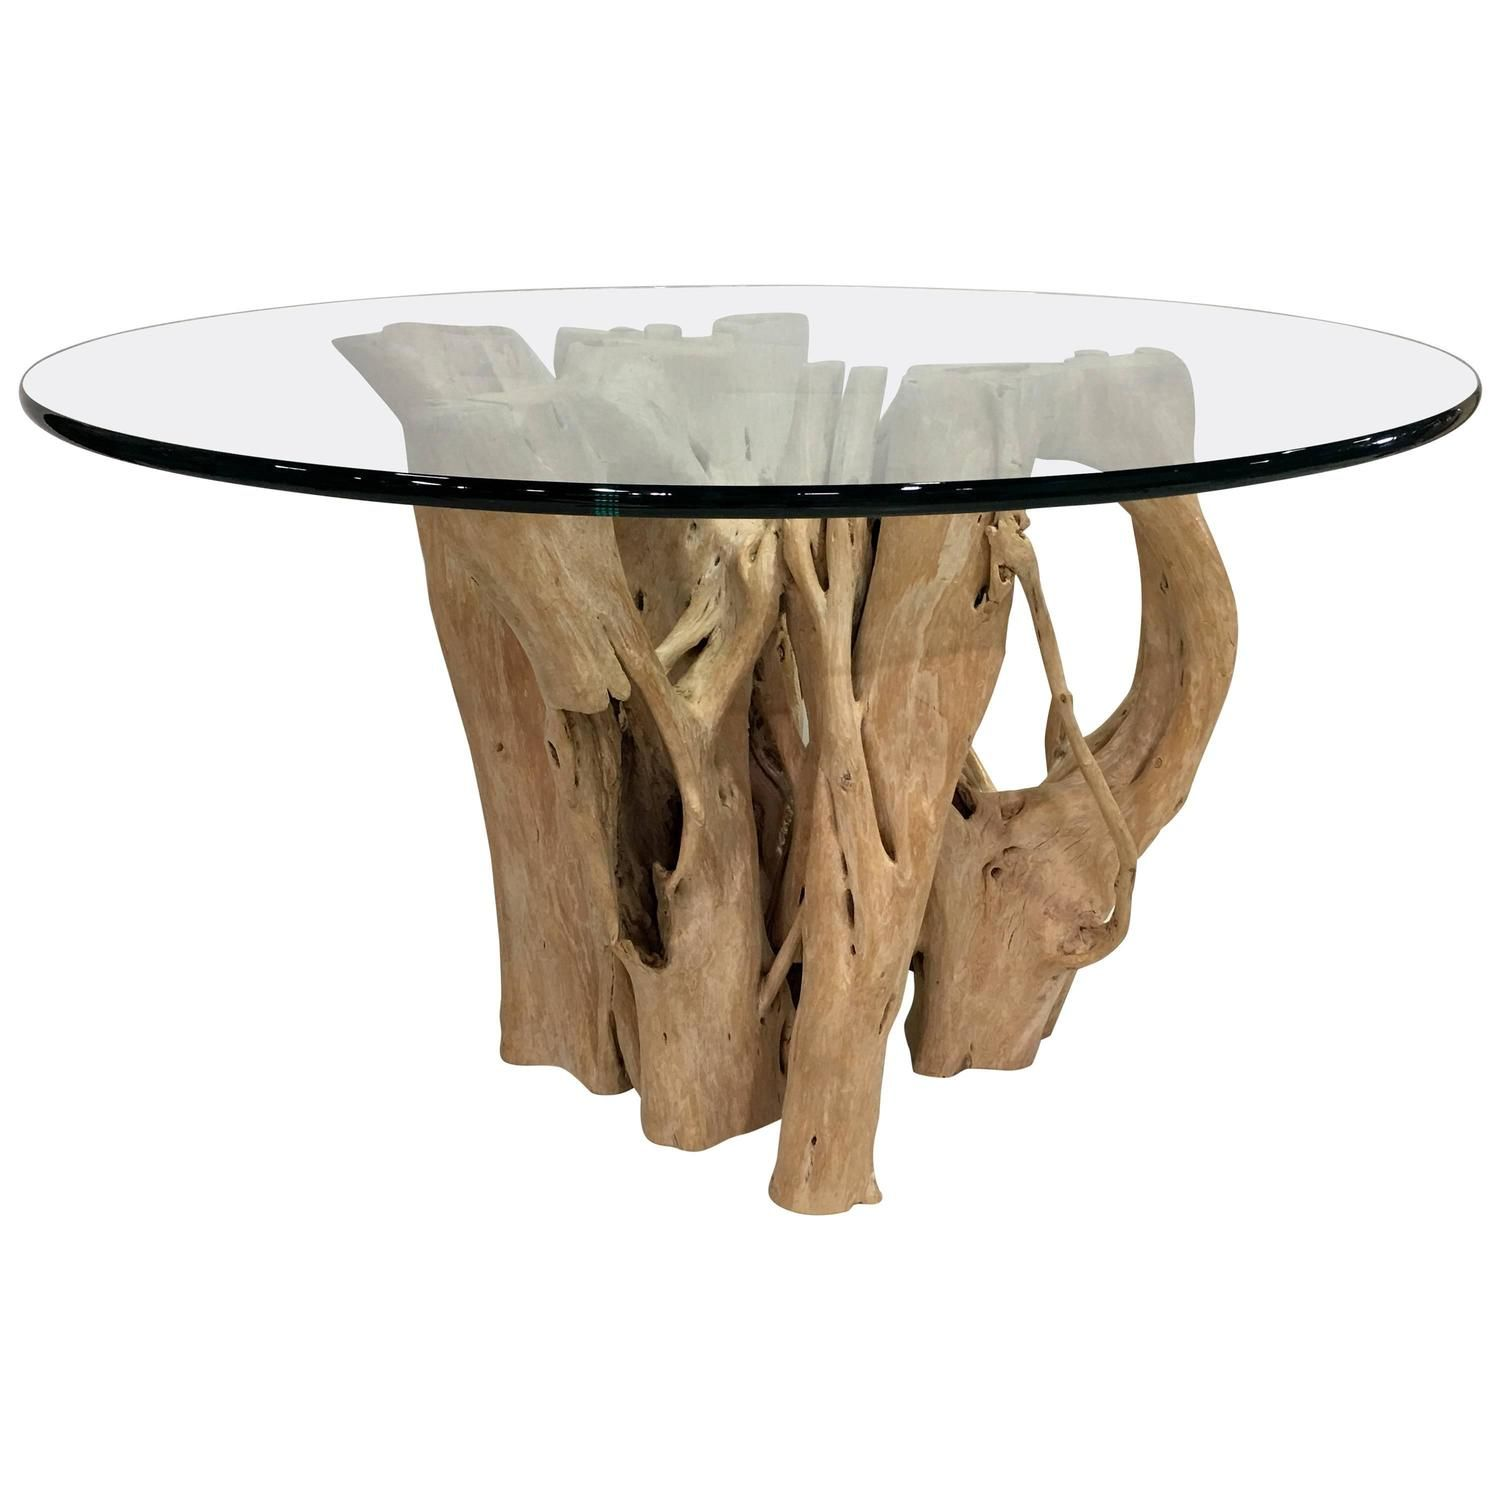 cypress tree trunk dining table by michael taylor